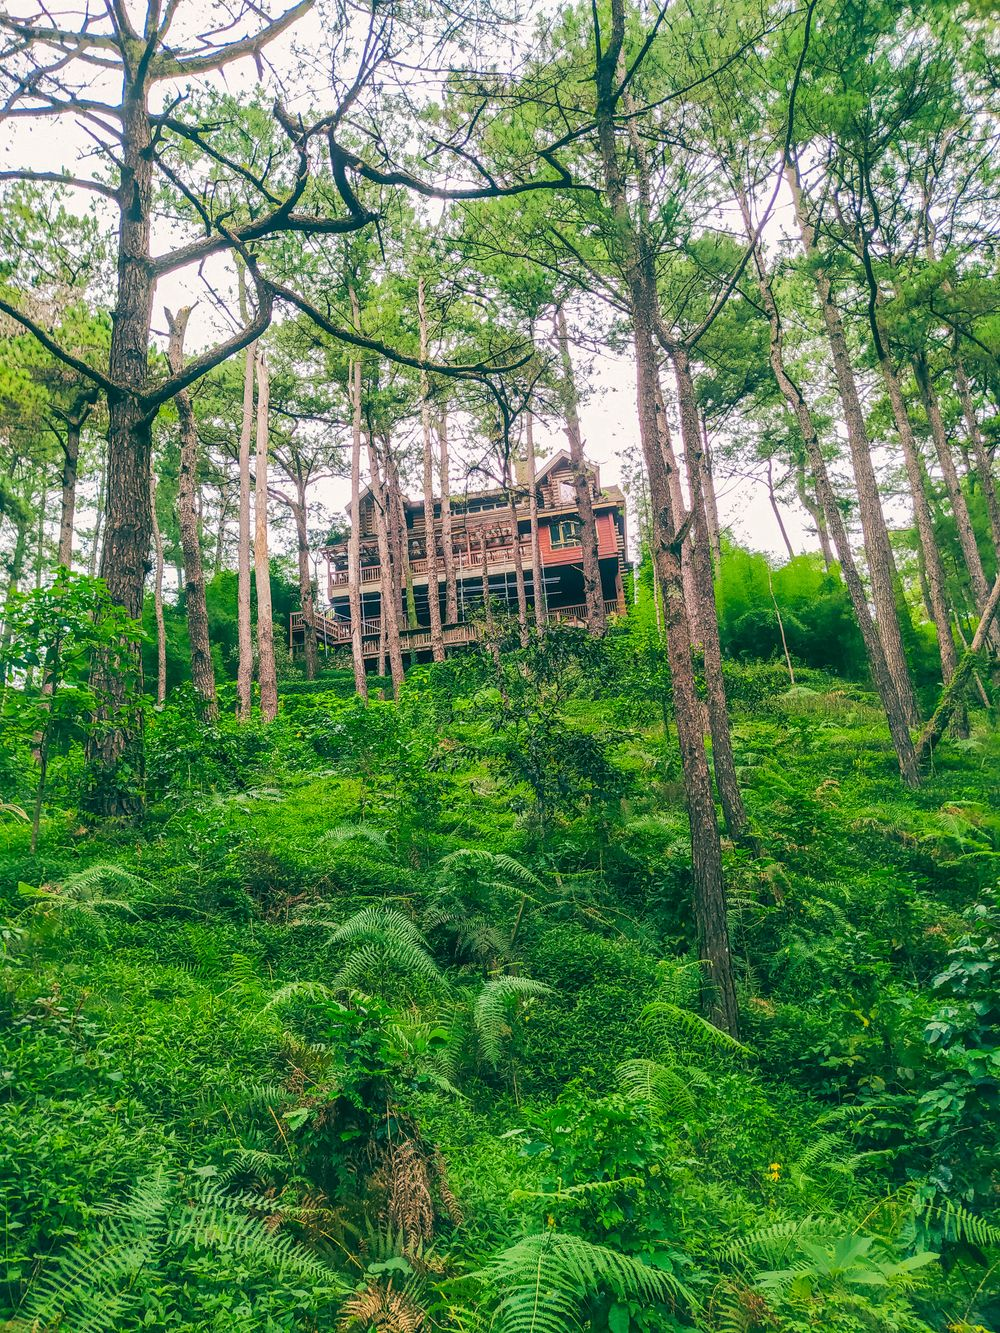 A brown house on top of a hill clad with ferns, plants, and trees